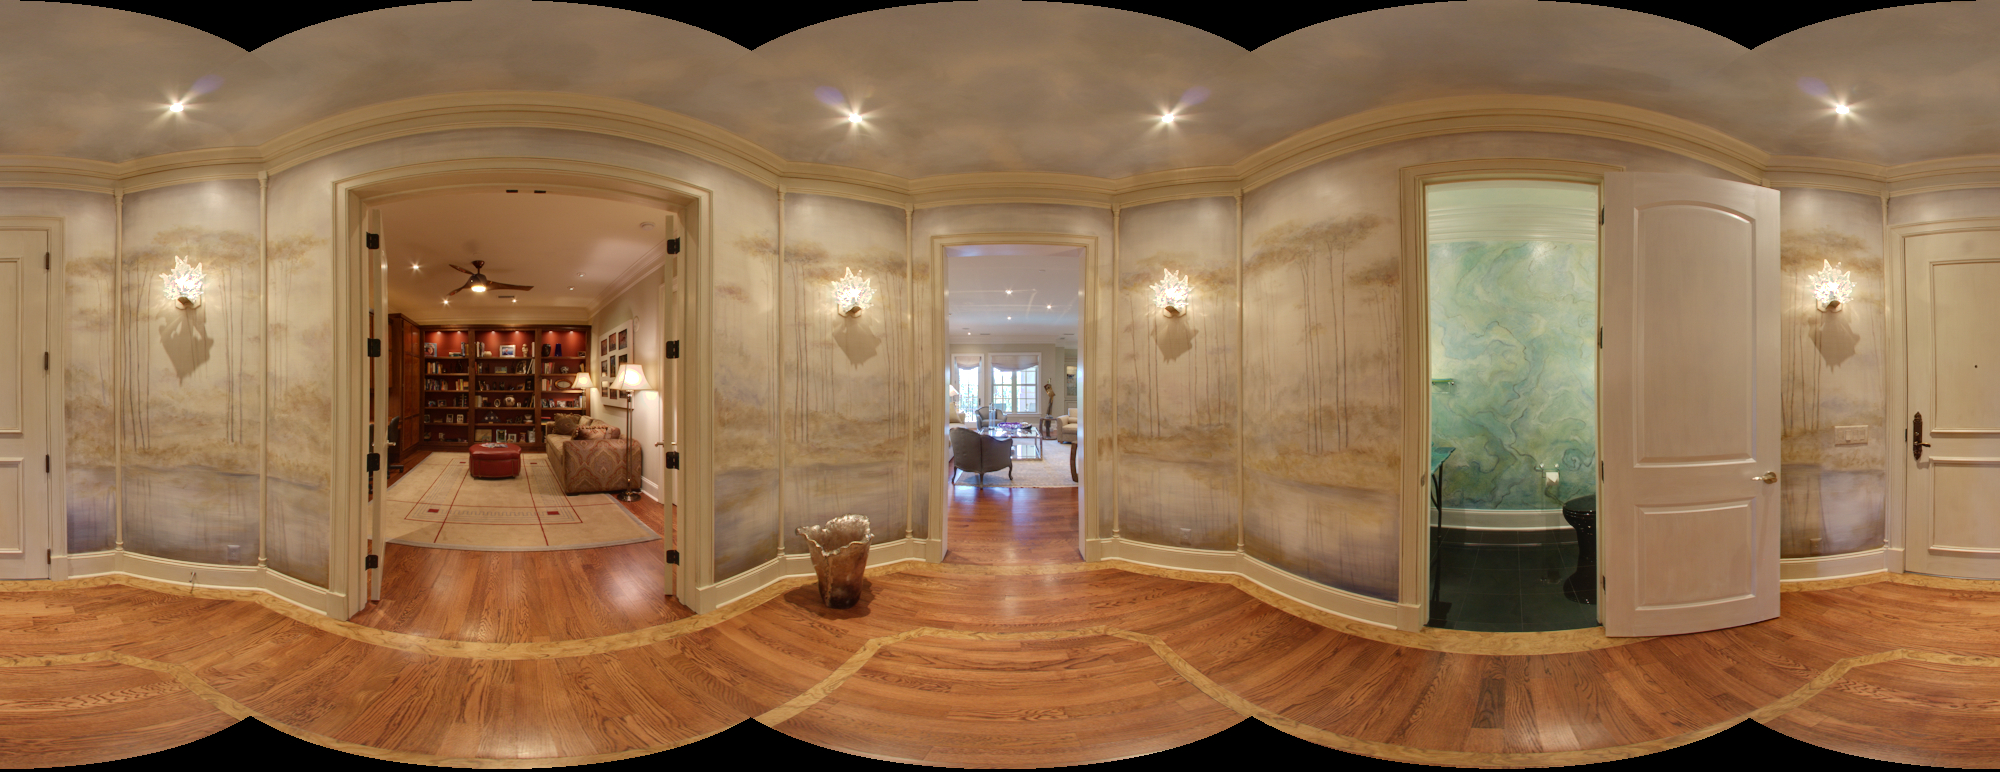 List of synonyms and antonyms of the word hdri room for Small room synonym